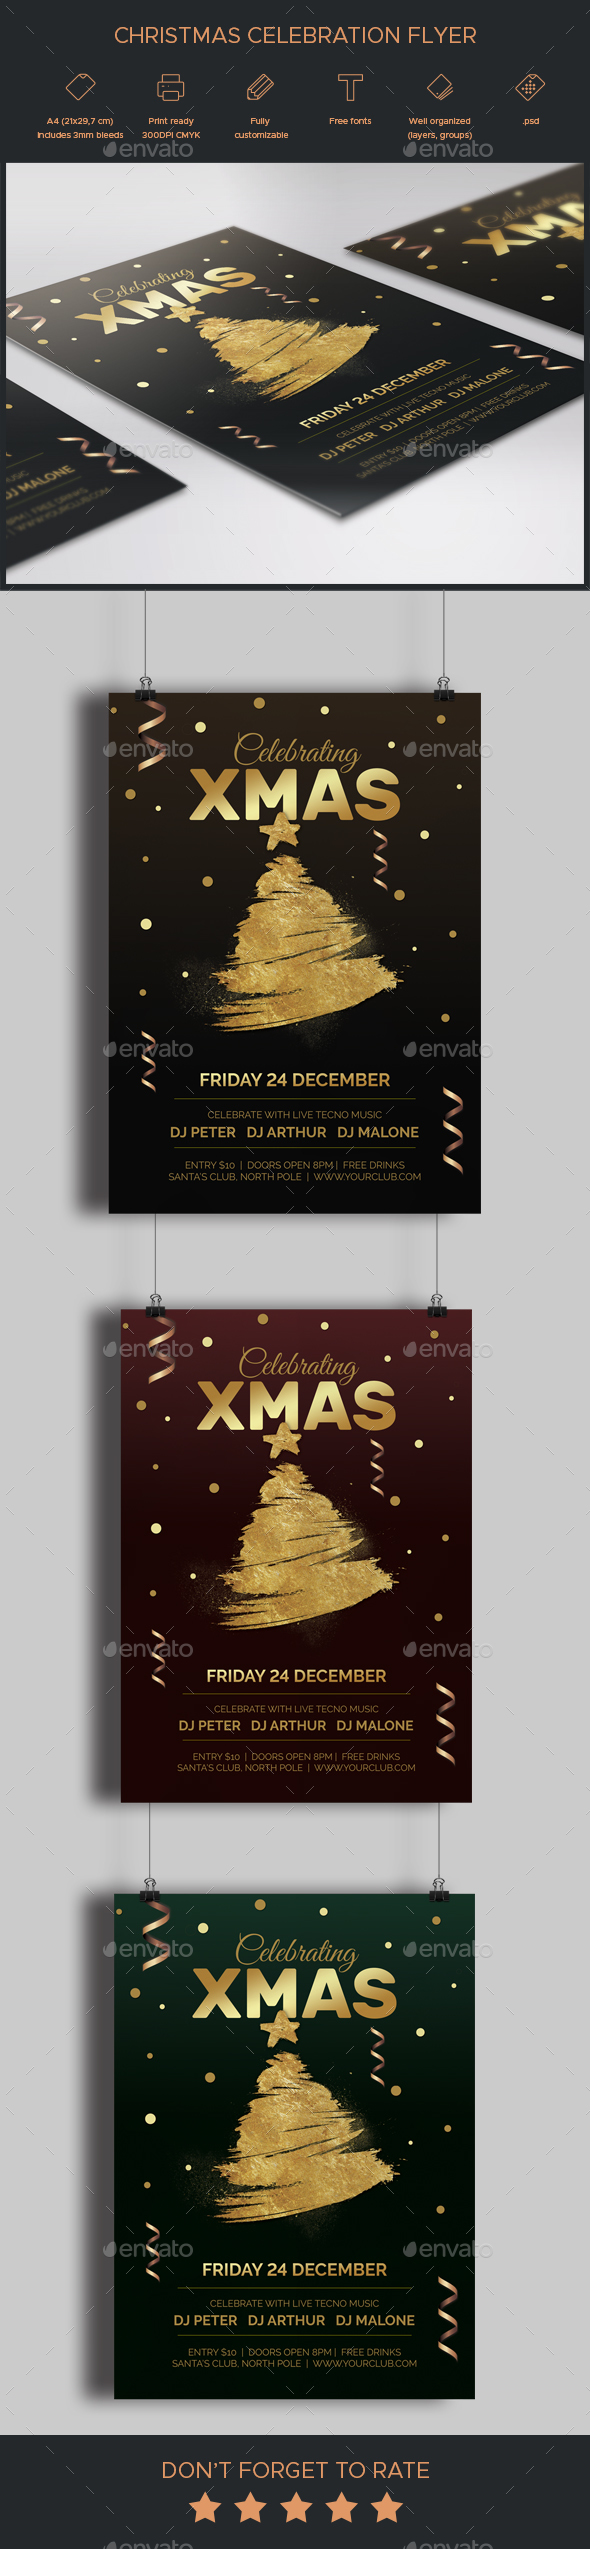 Christmas Celebration Flyer - Holidays Events